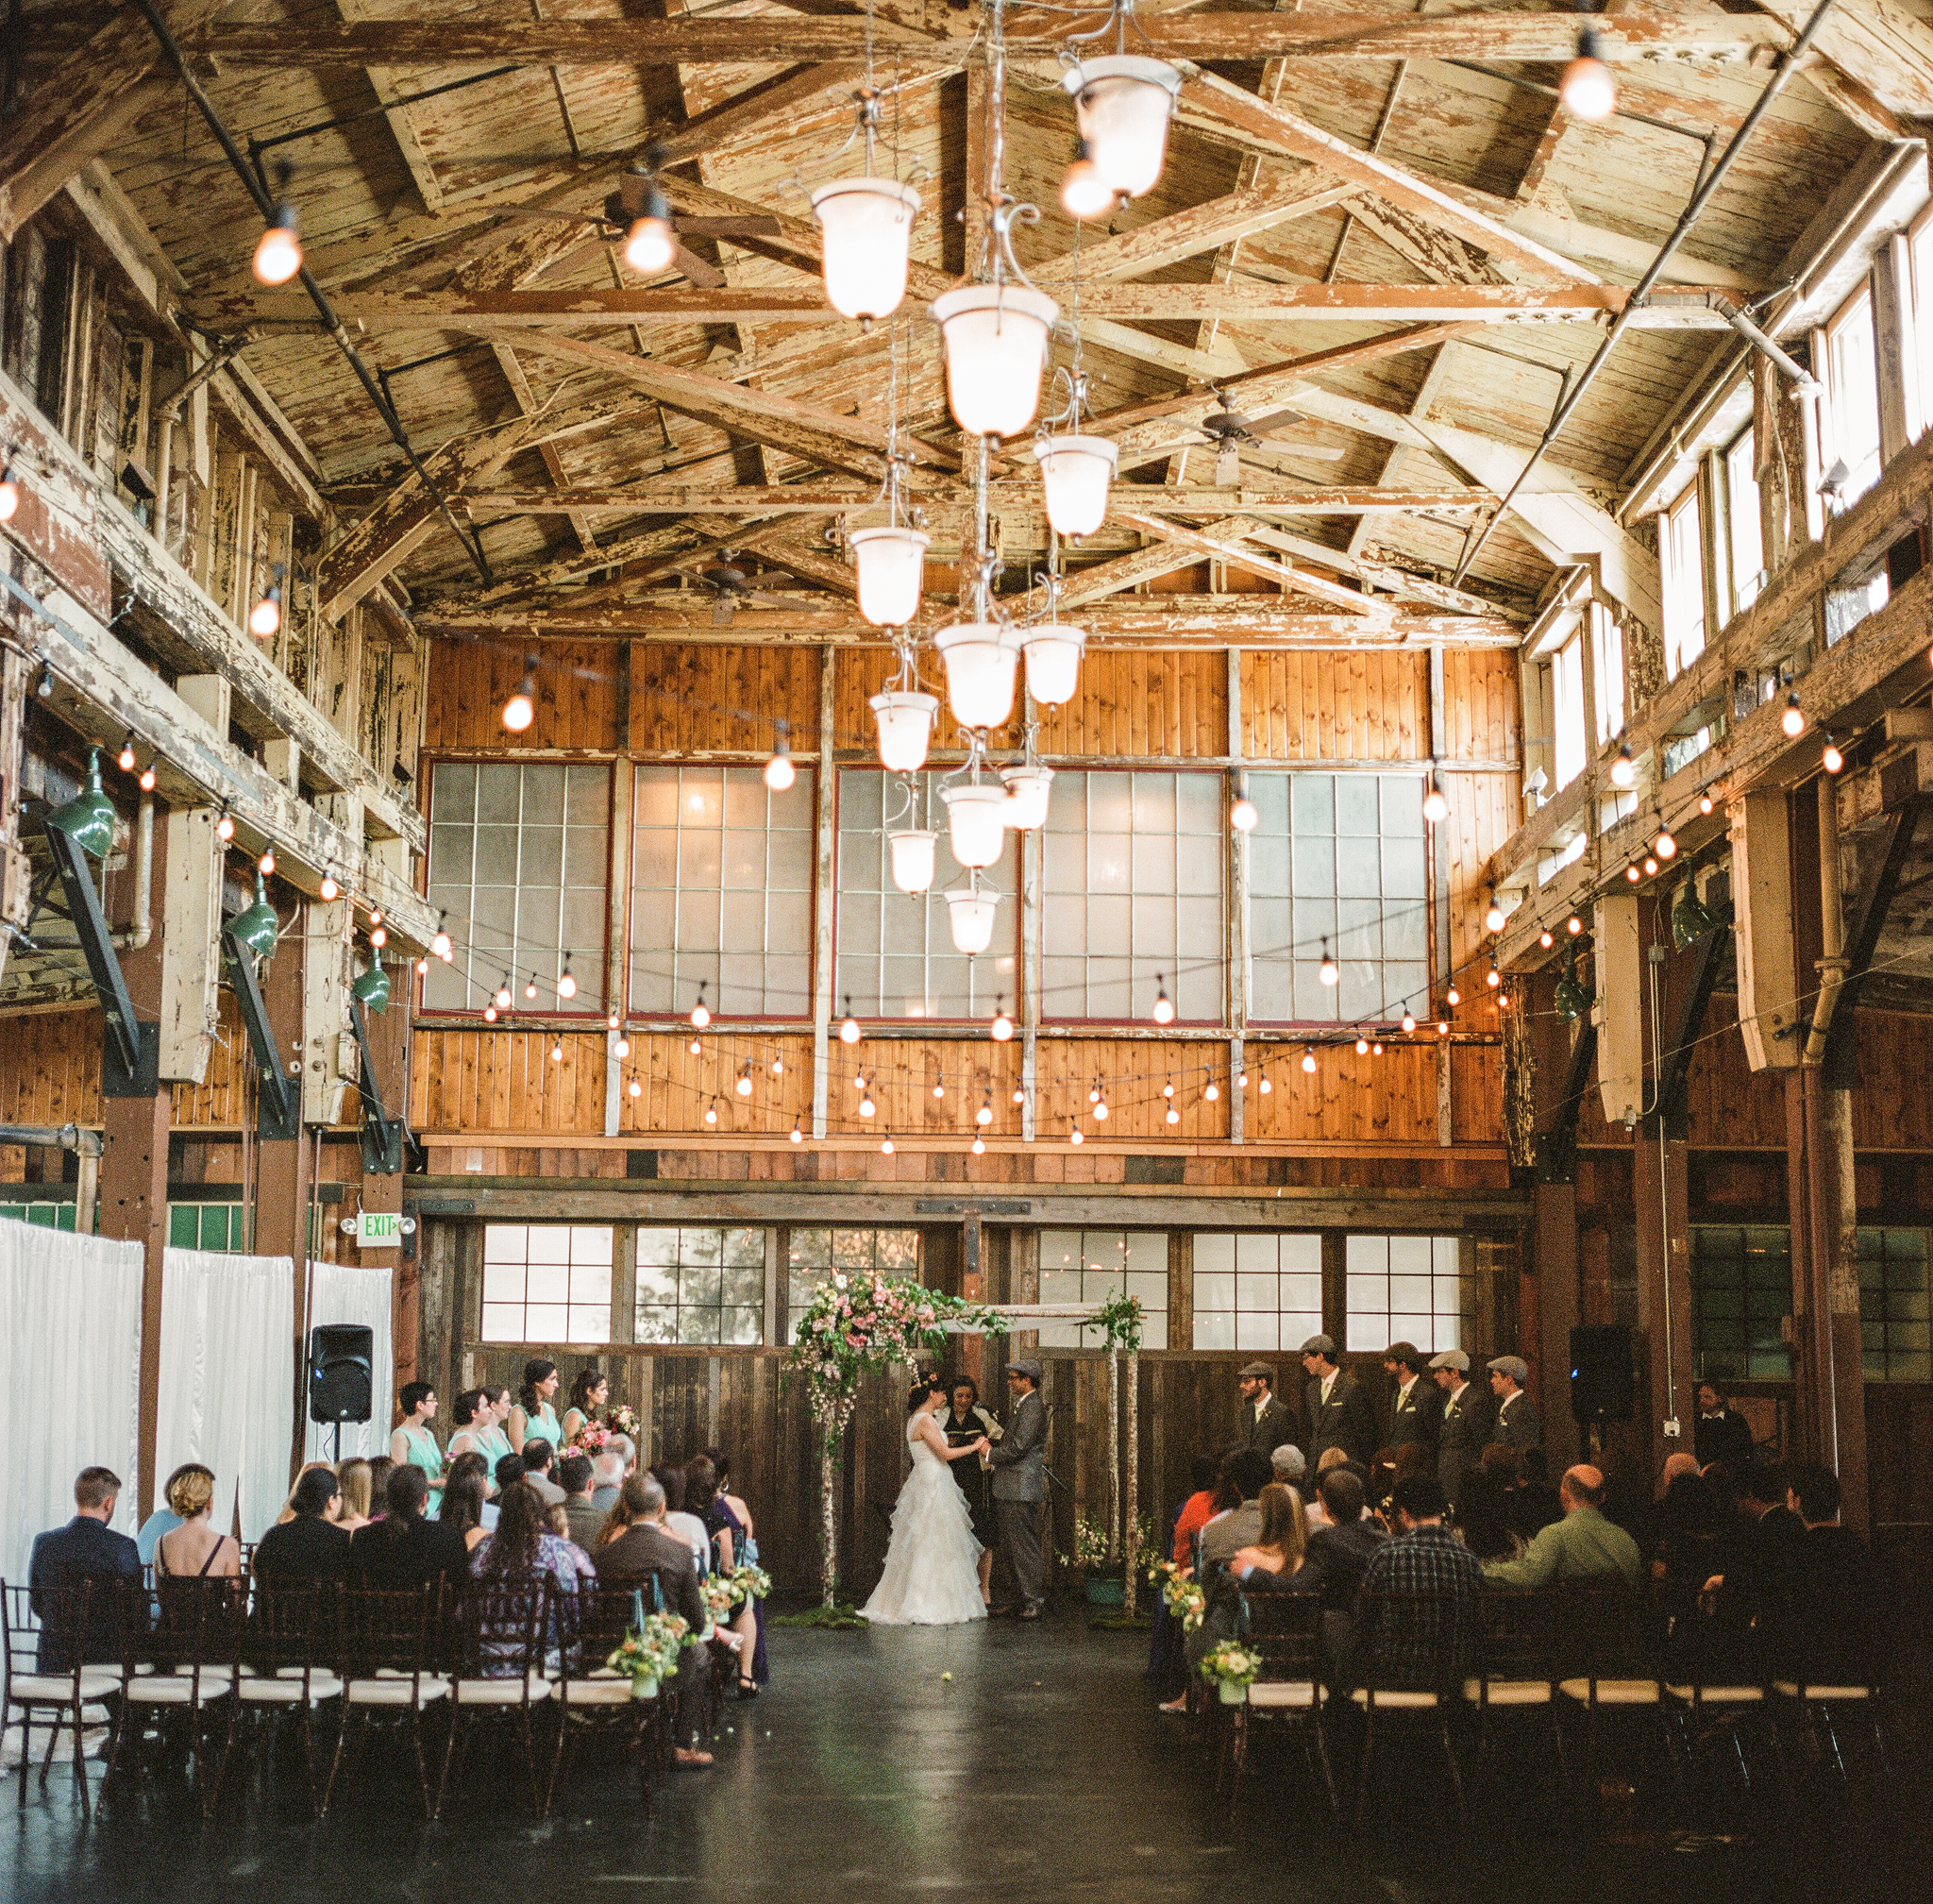 Sodo Park Wedding Benj Haisch Sodo Park Wedding Wedding Industrial Wedding Inspiration